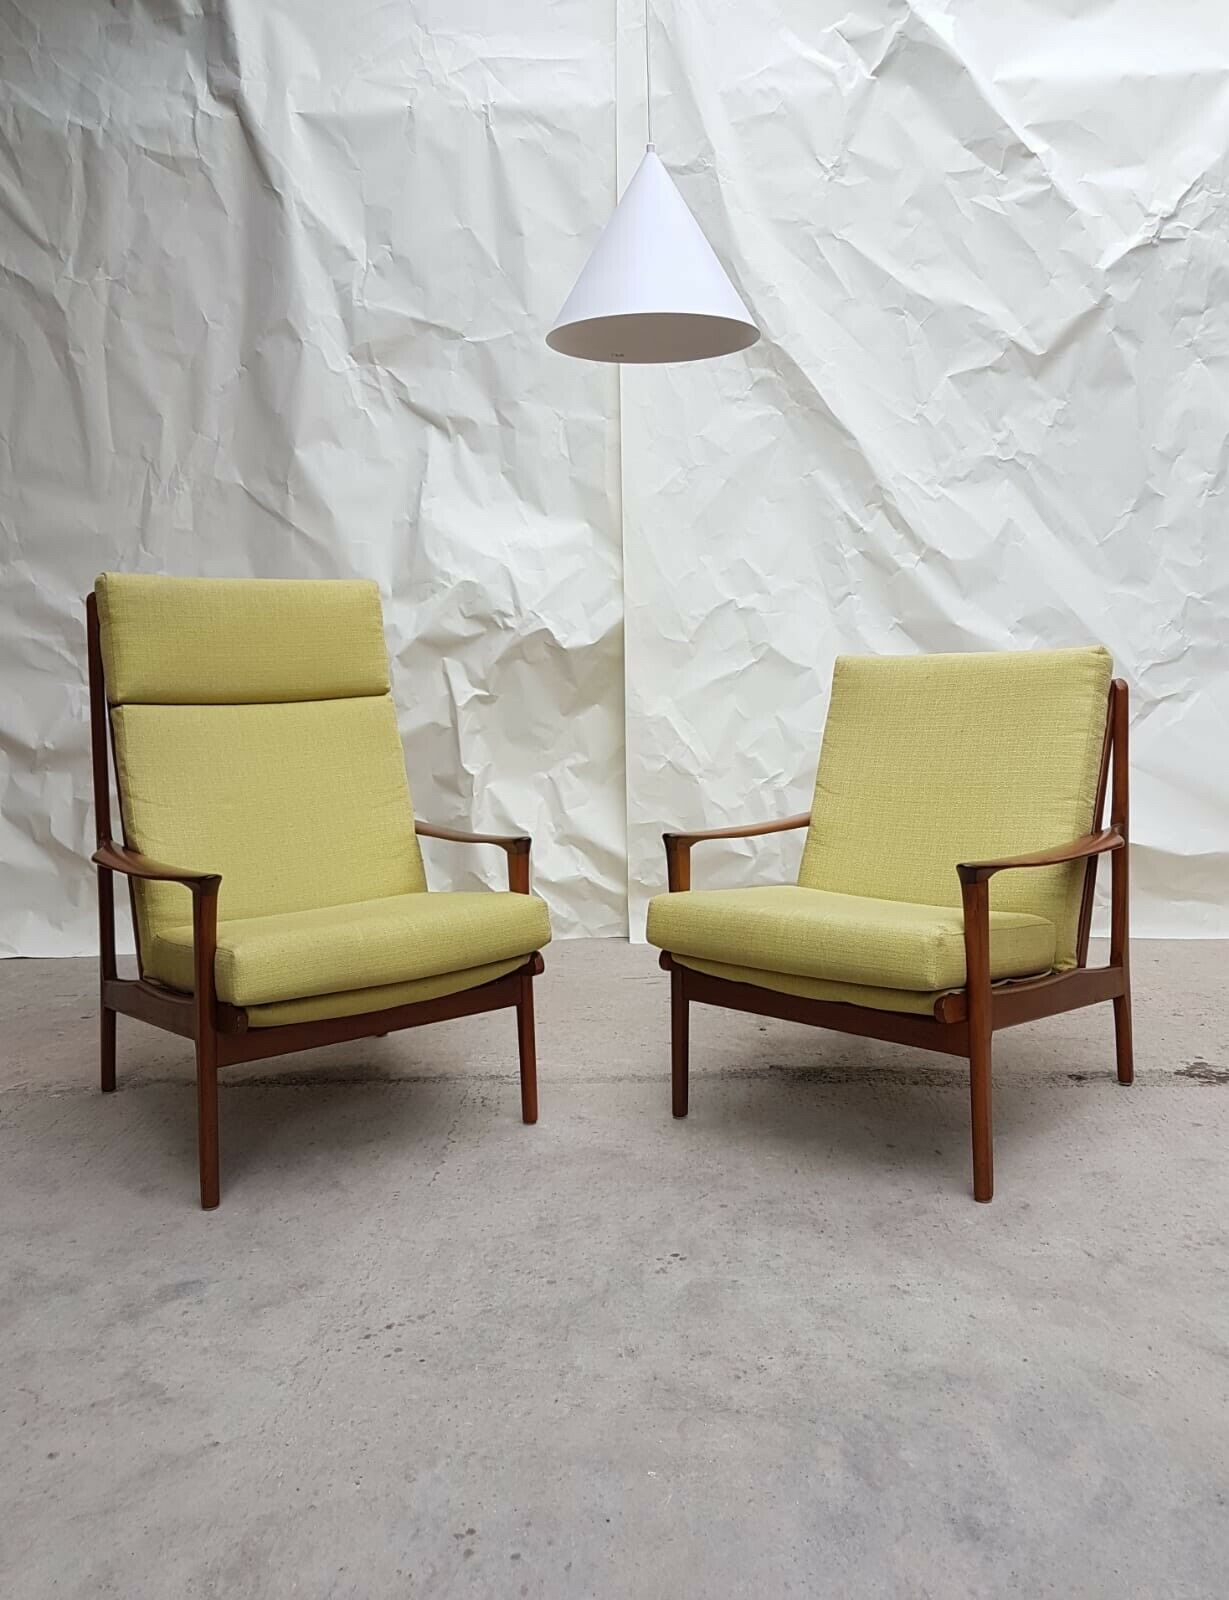 Image of: Vtg Mid Century Pair Of Australian Teak Linen Lounge Chairs Armchairs Retro Vinterior